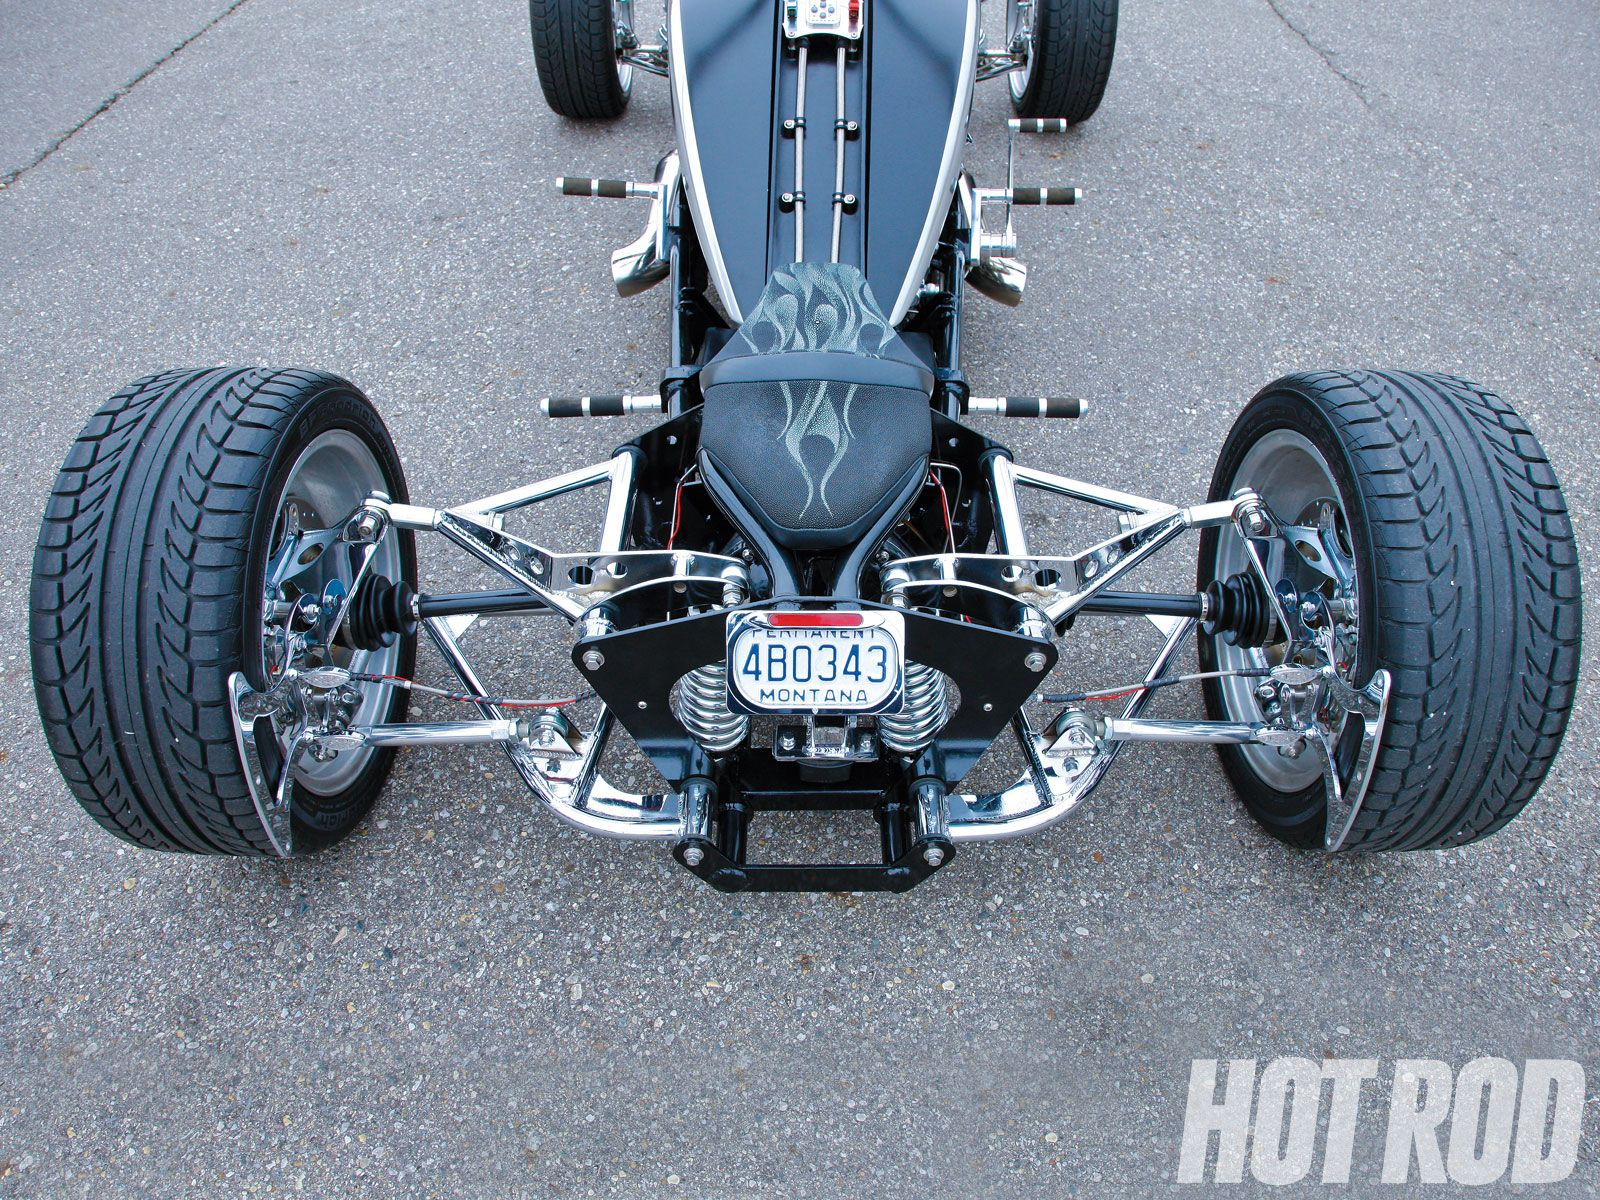 Hot rod quad... back end of the Brimstone Quadracycle, powered by a 300-750hp small-block V8 engine.